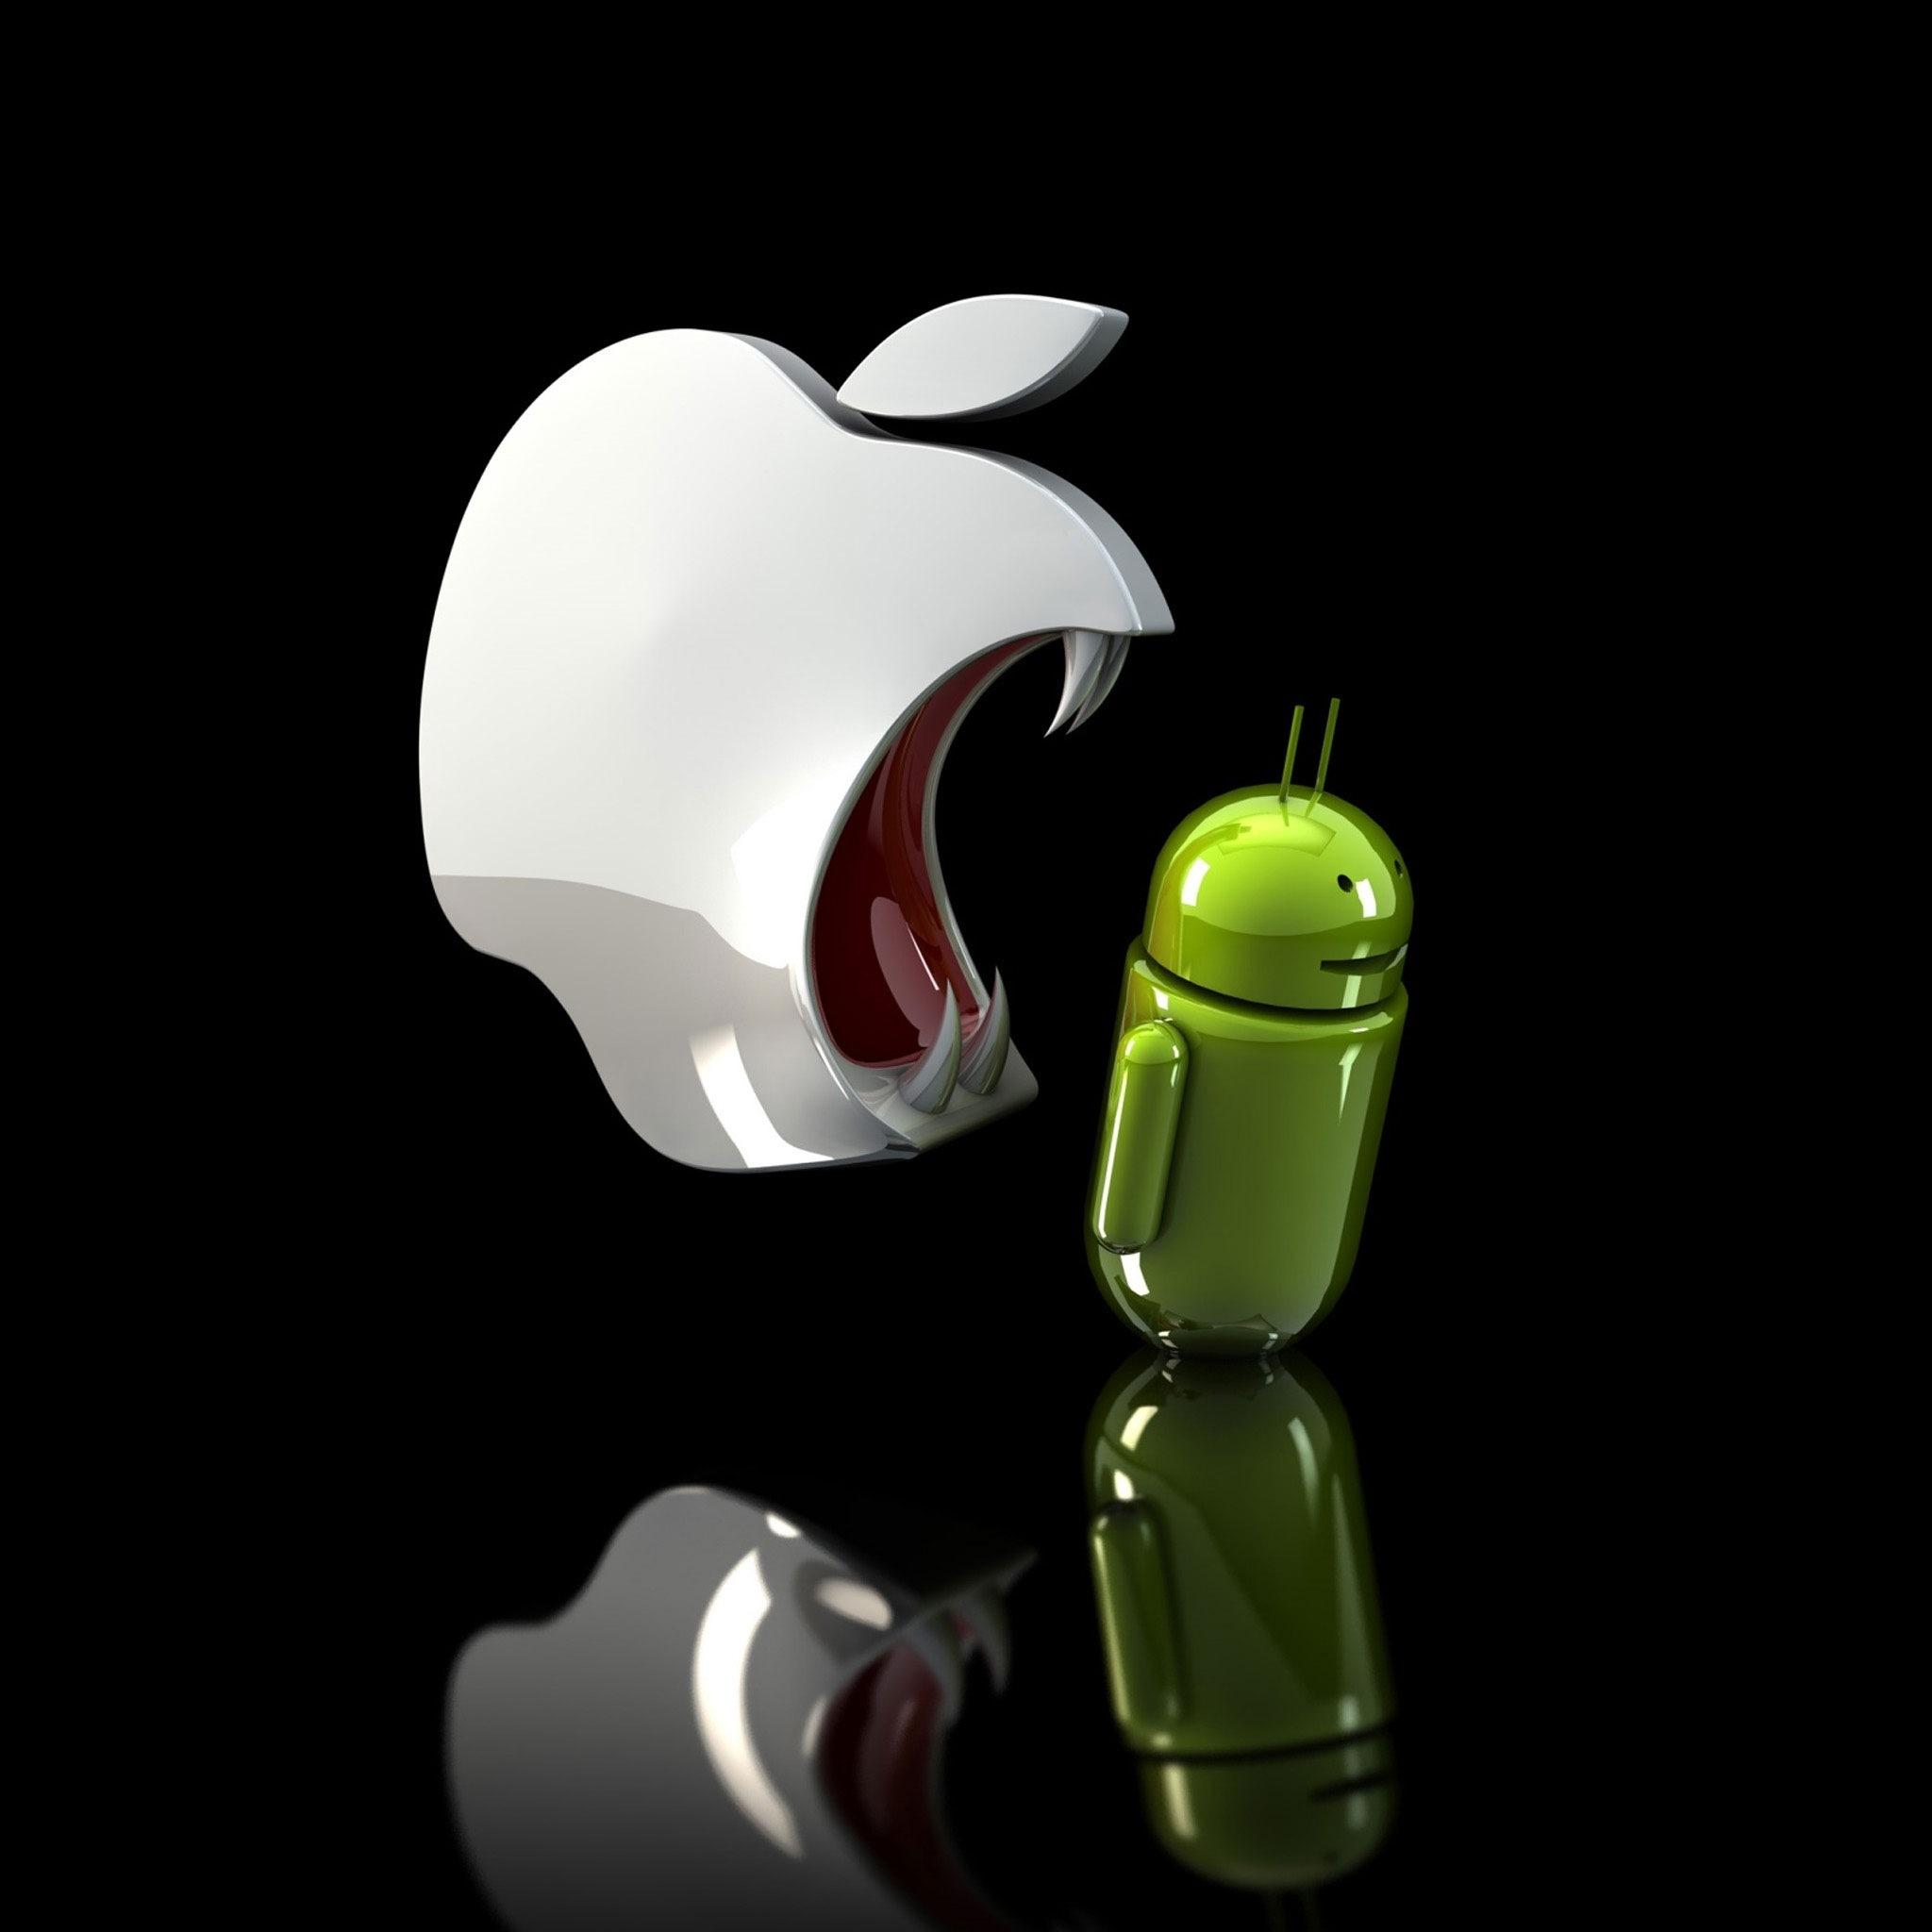 Funny Apple and Android Logo Wallpaper